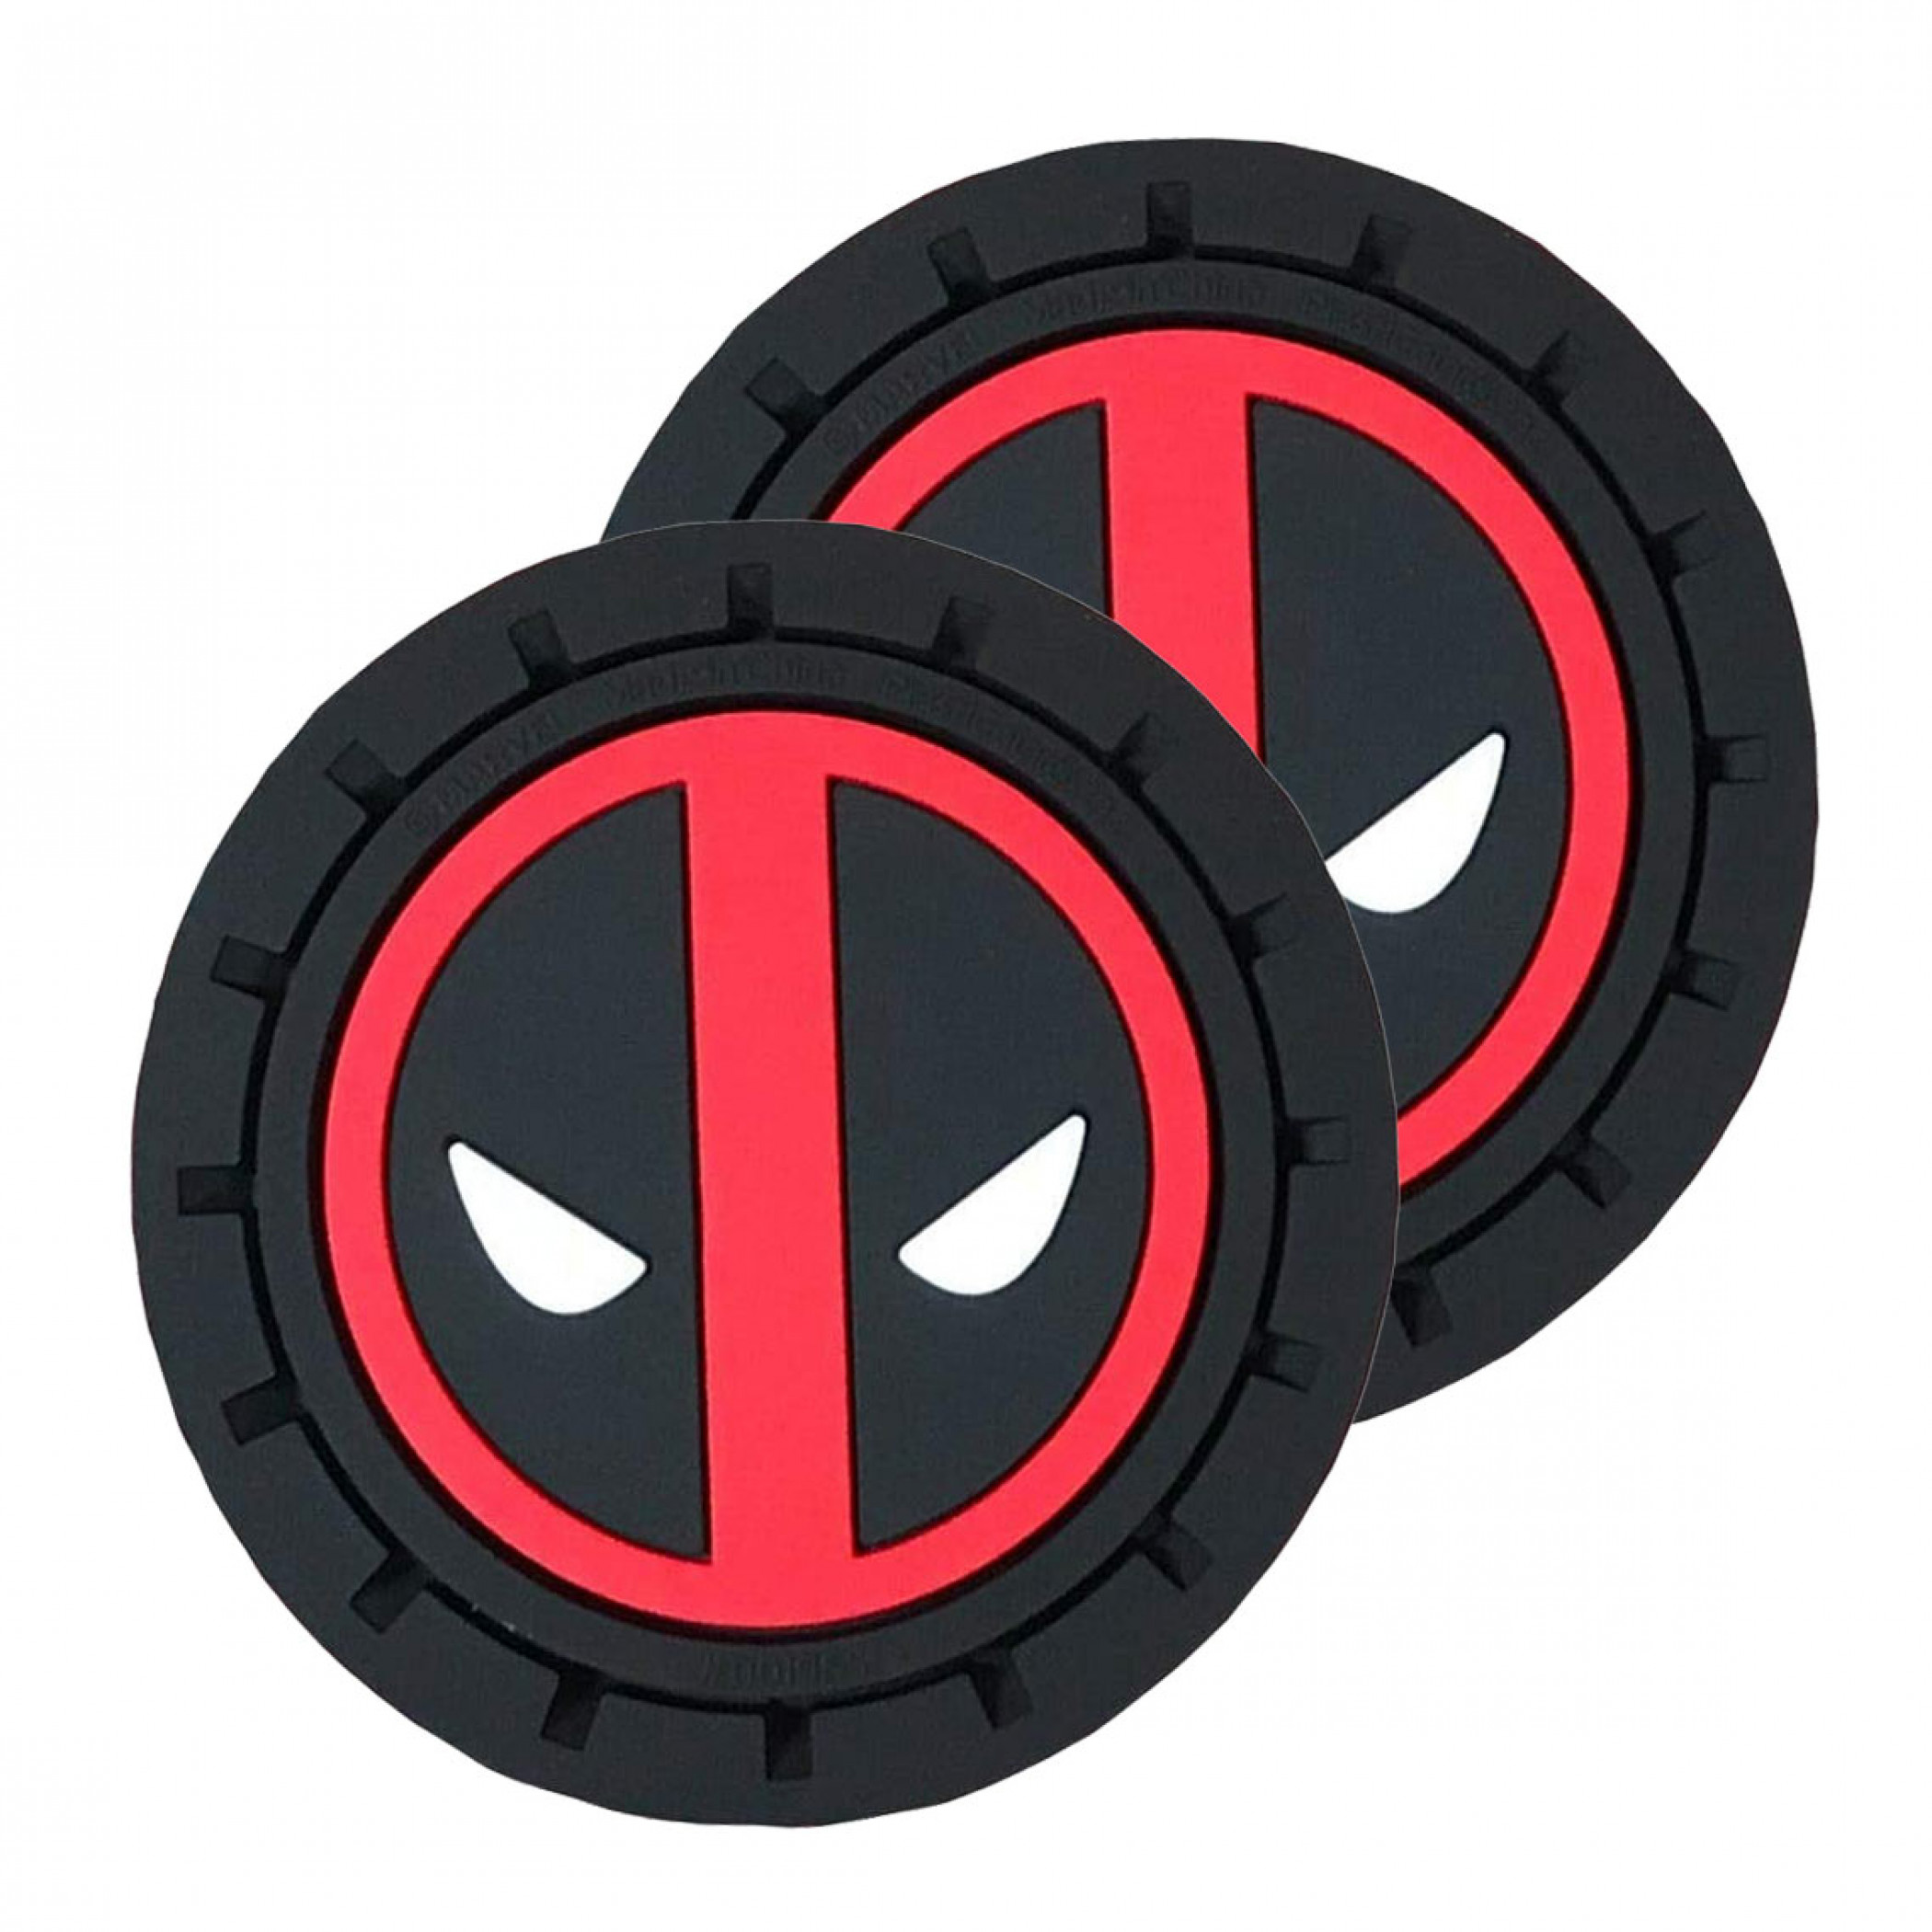 Deadpool Logo Car Cup Holder Coaster 2-Pack